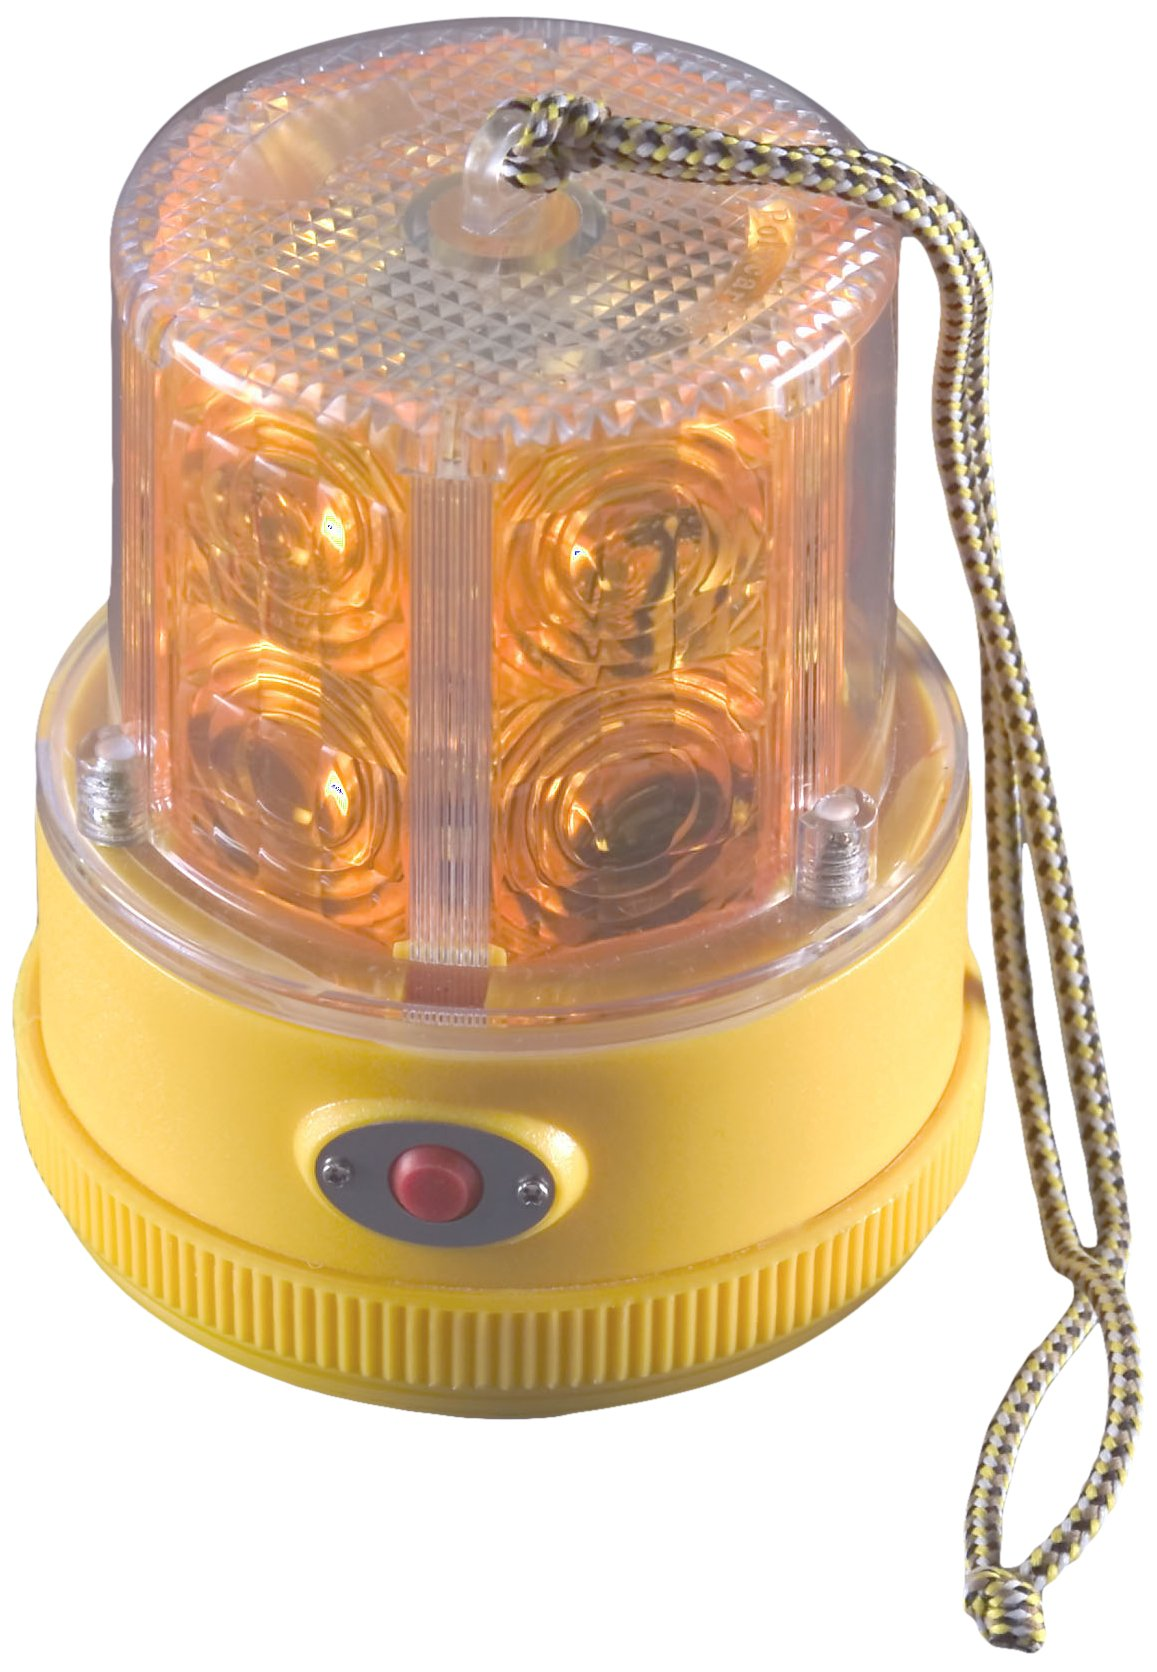 North American Signal PSLM2-A LED Personal Safety Warning Light with Magnetic Mount, Battery Operated, Amber by North American Signal